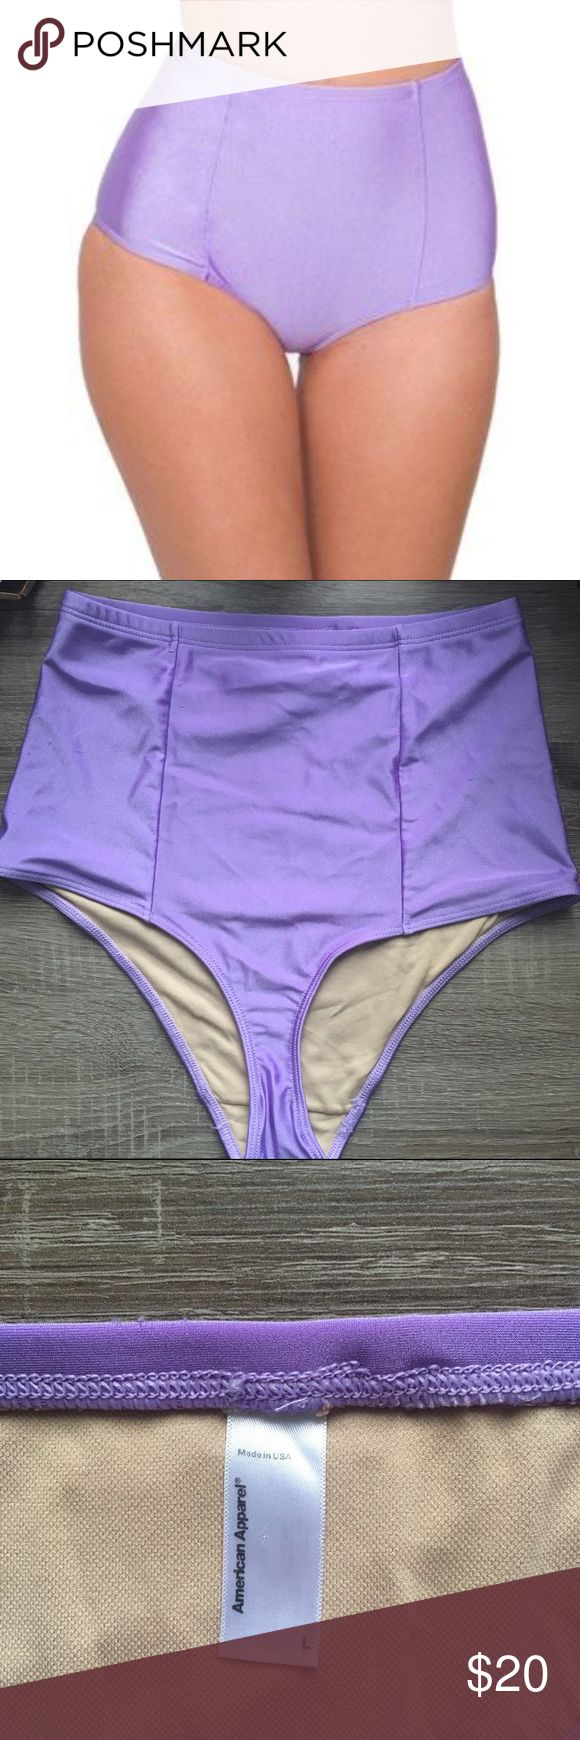 American Apparel Purple High Waisted Bikini Bottom A super cute, perfect for spring high waisted bikini bottom from American Apparel. Slimming fit, runs slightly small. Small fuzzies on back from being washed, not noticeable when wearing. American Apparel Swim Bikinis